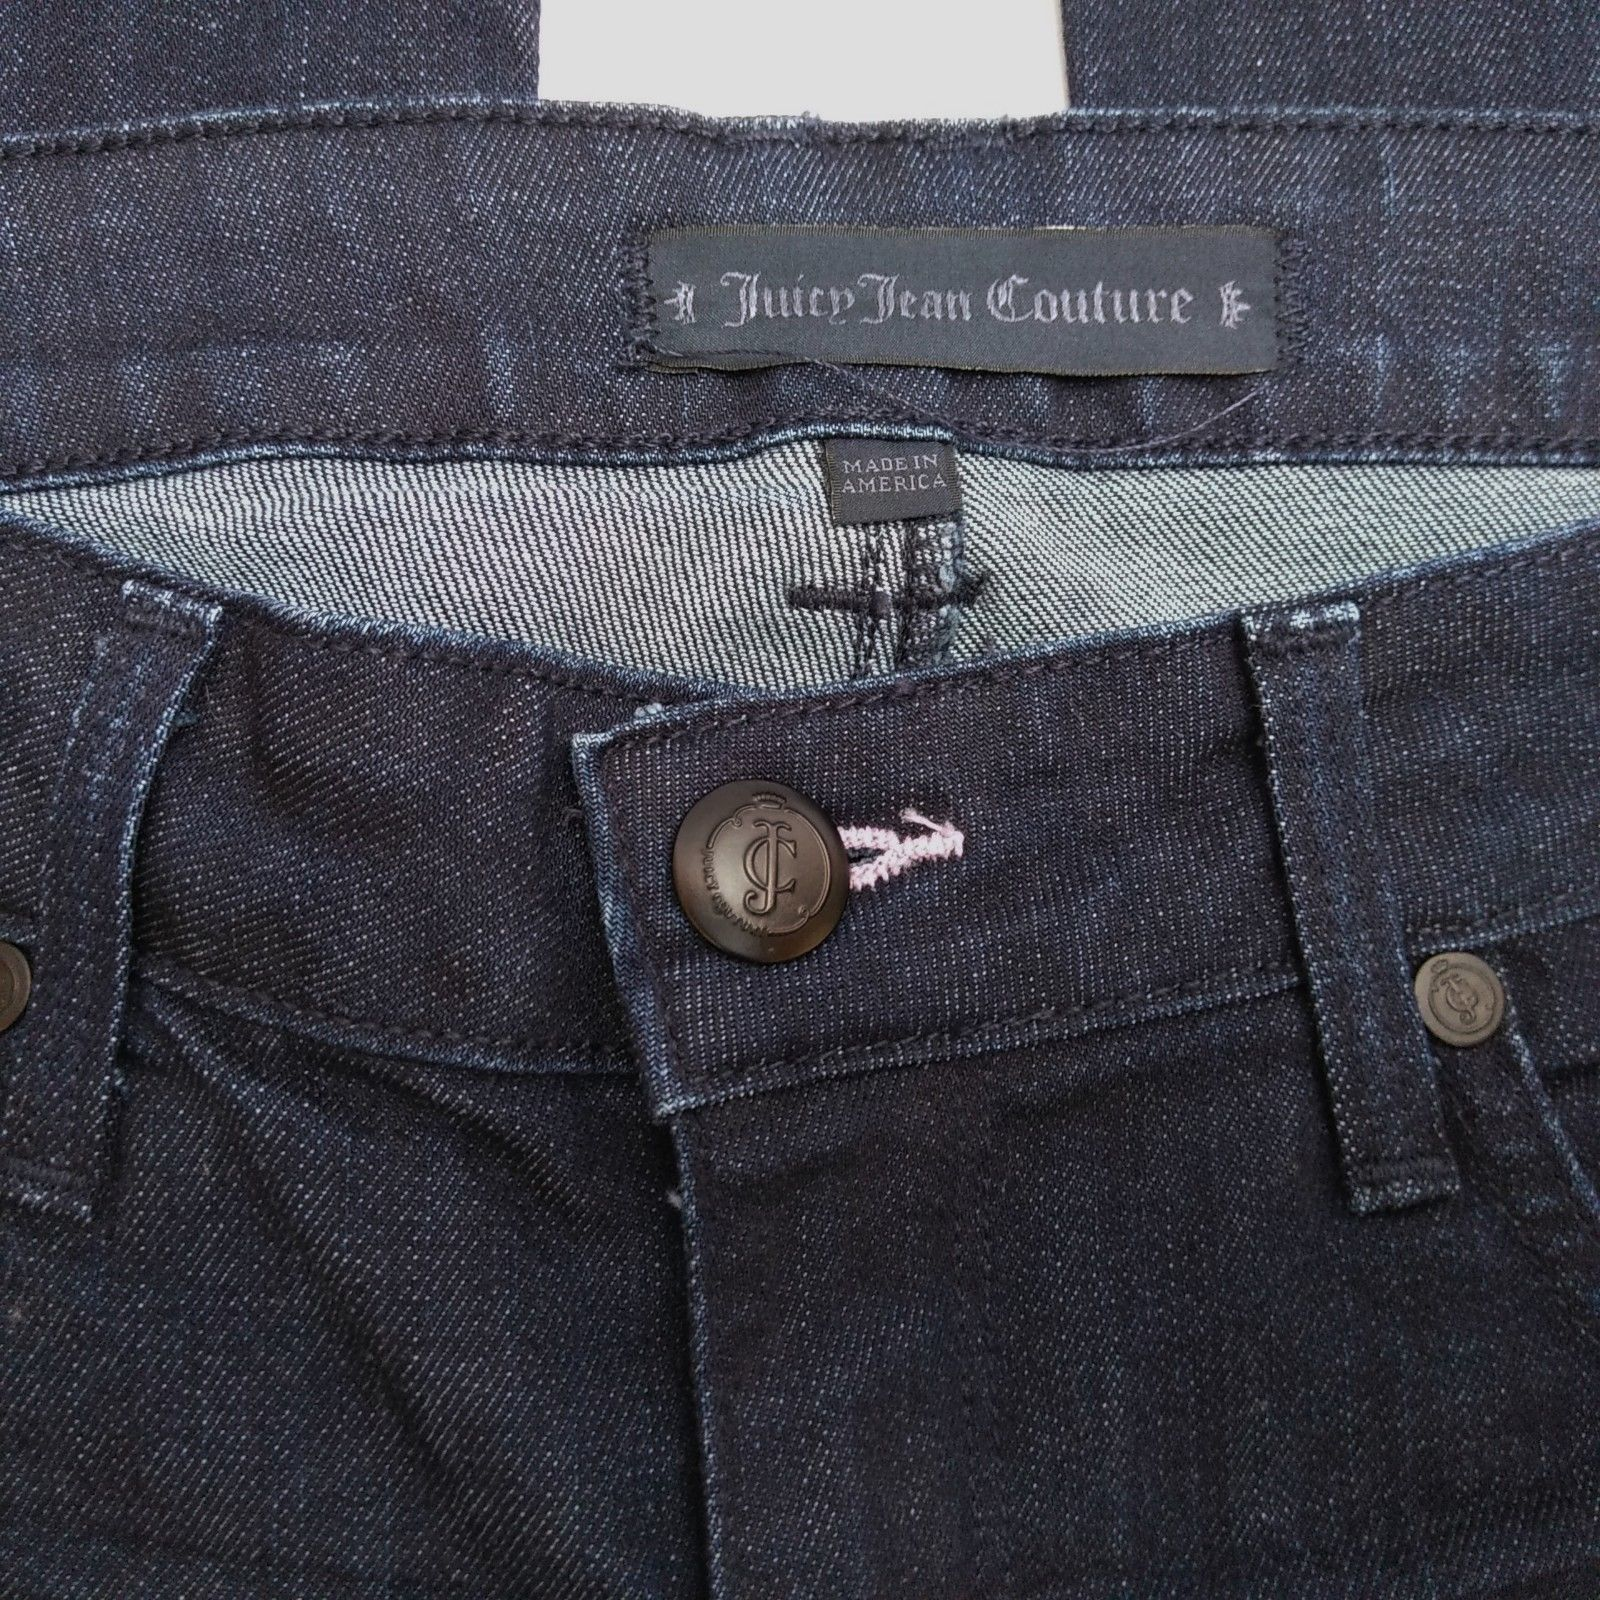 Juicy Jean Couture High Rise Flare Womens Jeans Size 28 Long Dark Wash    image 5